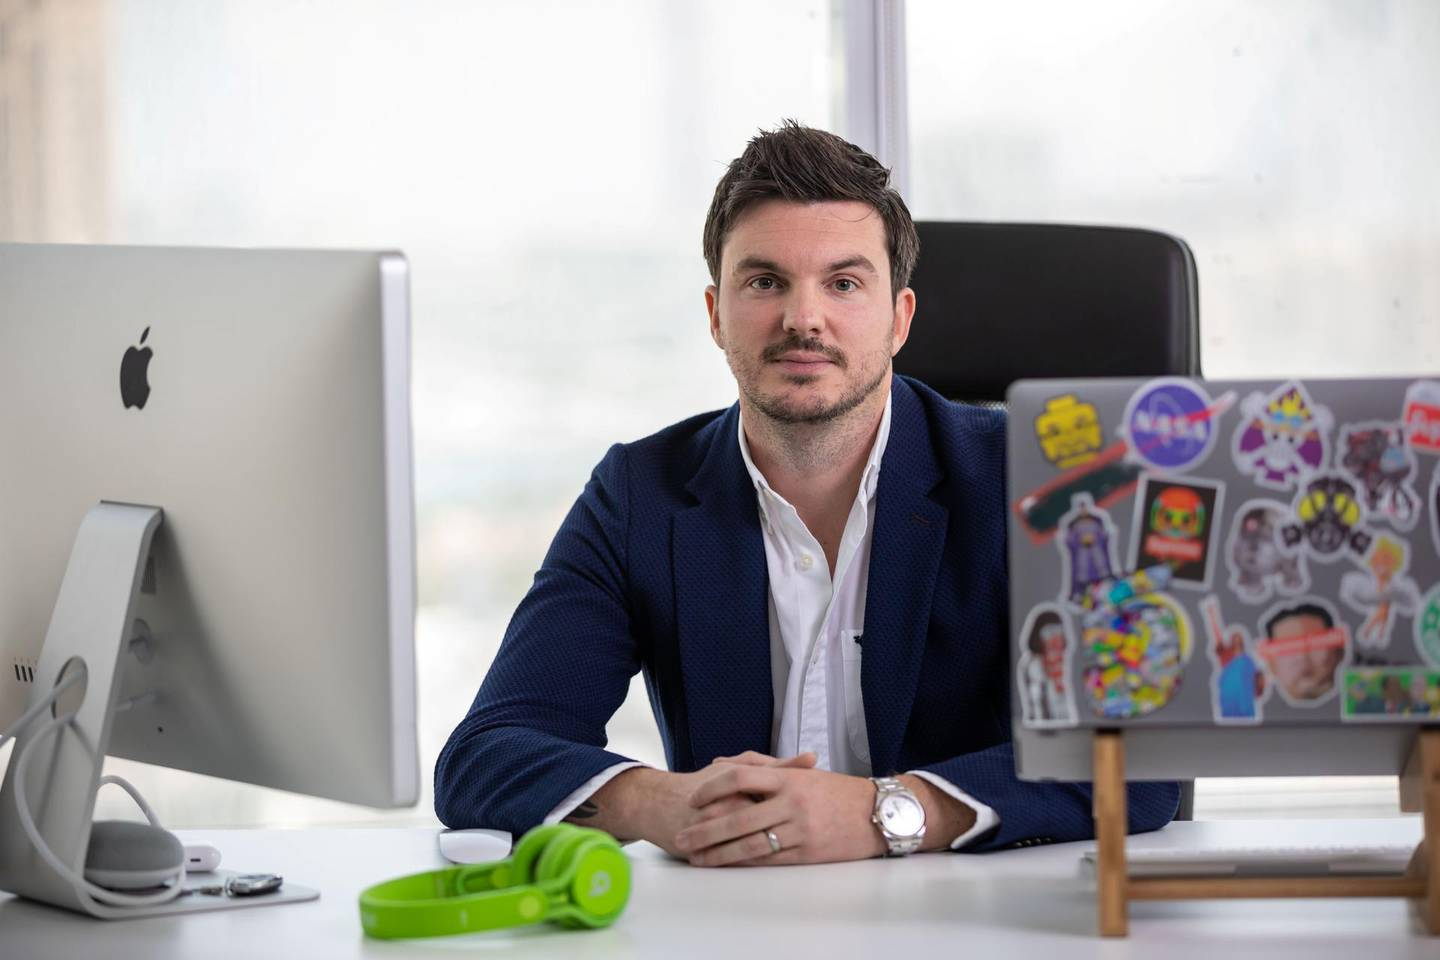 Dubai, United Arab Emirates- interview with Jon Richards, founder and chief executive of Yallacompare. Grace Guino for The National for Alice Haine's story